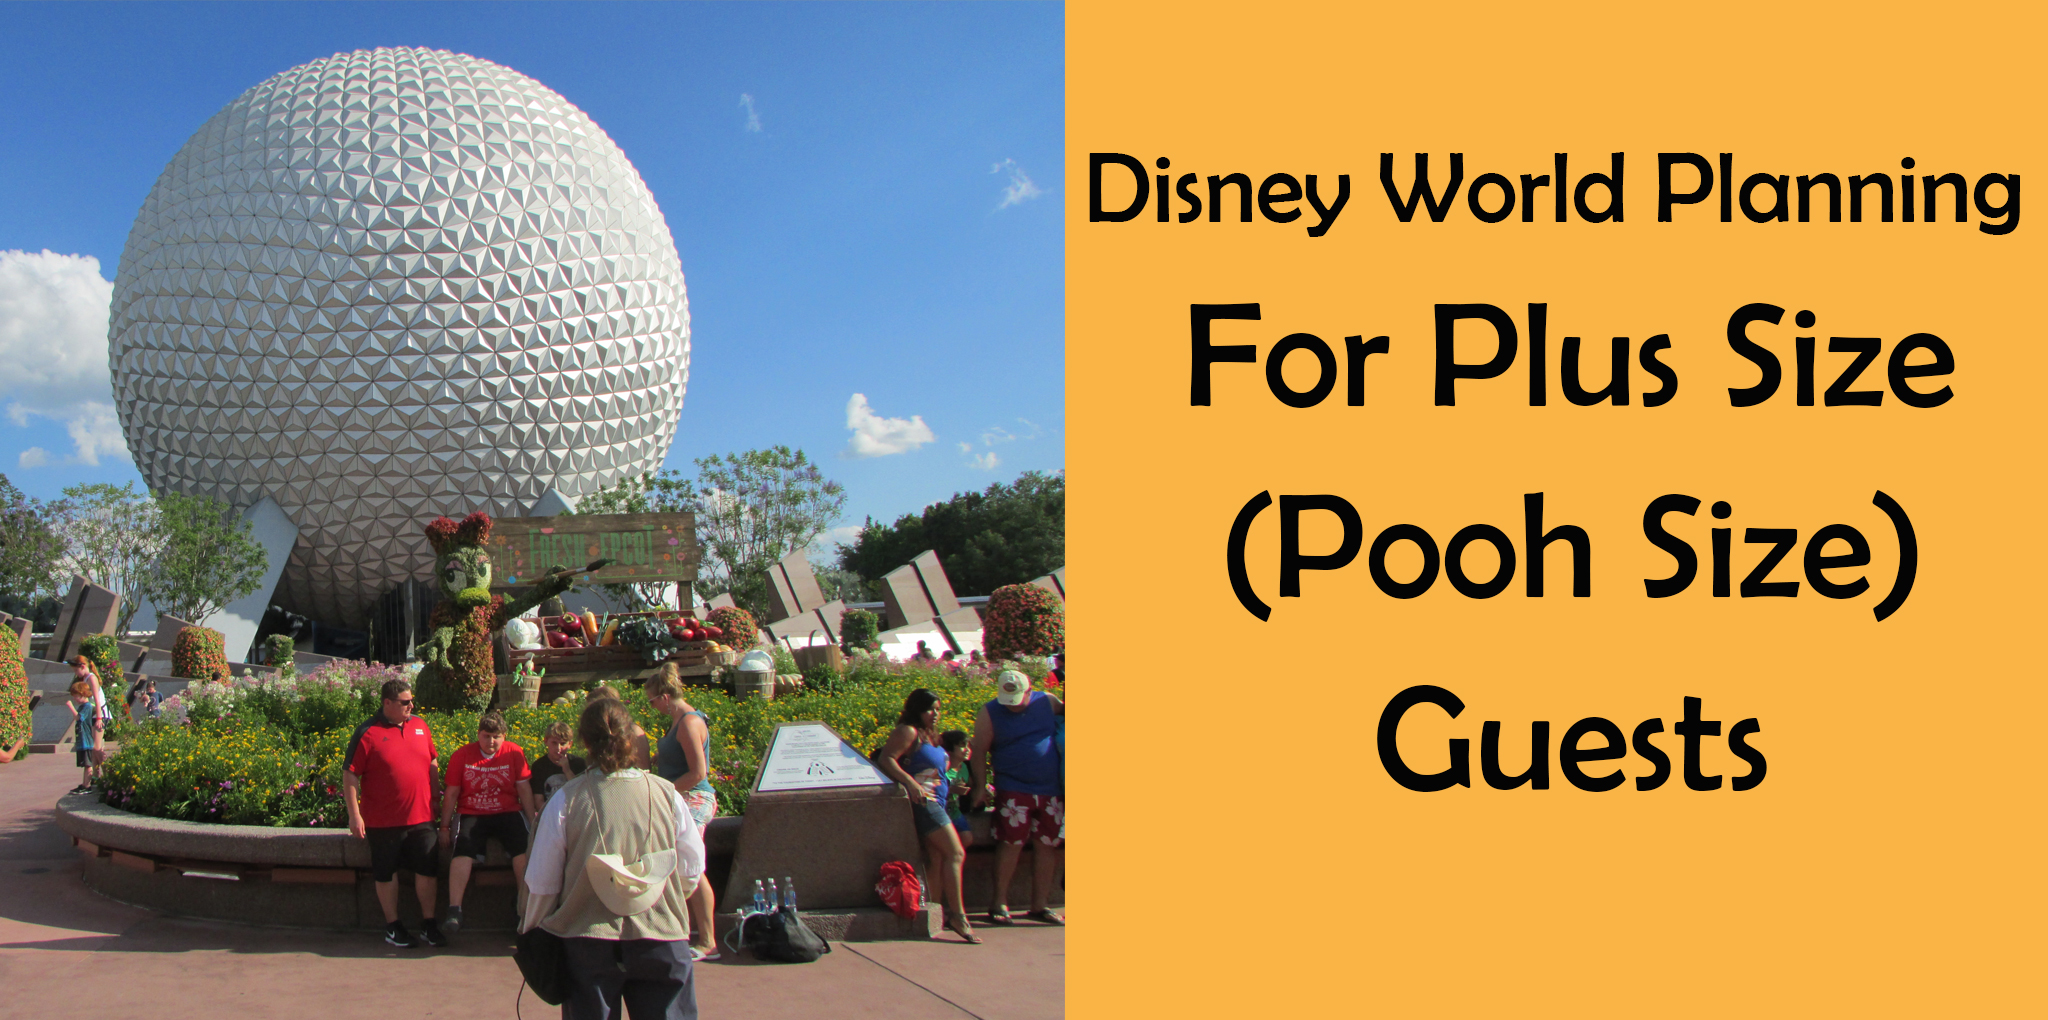 c09409141 Disney World Planning for Plus Size (Pooh Size) Guests - Part 1 ...